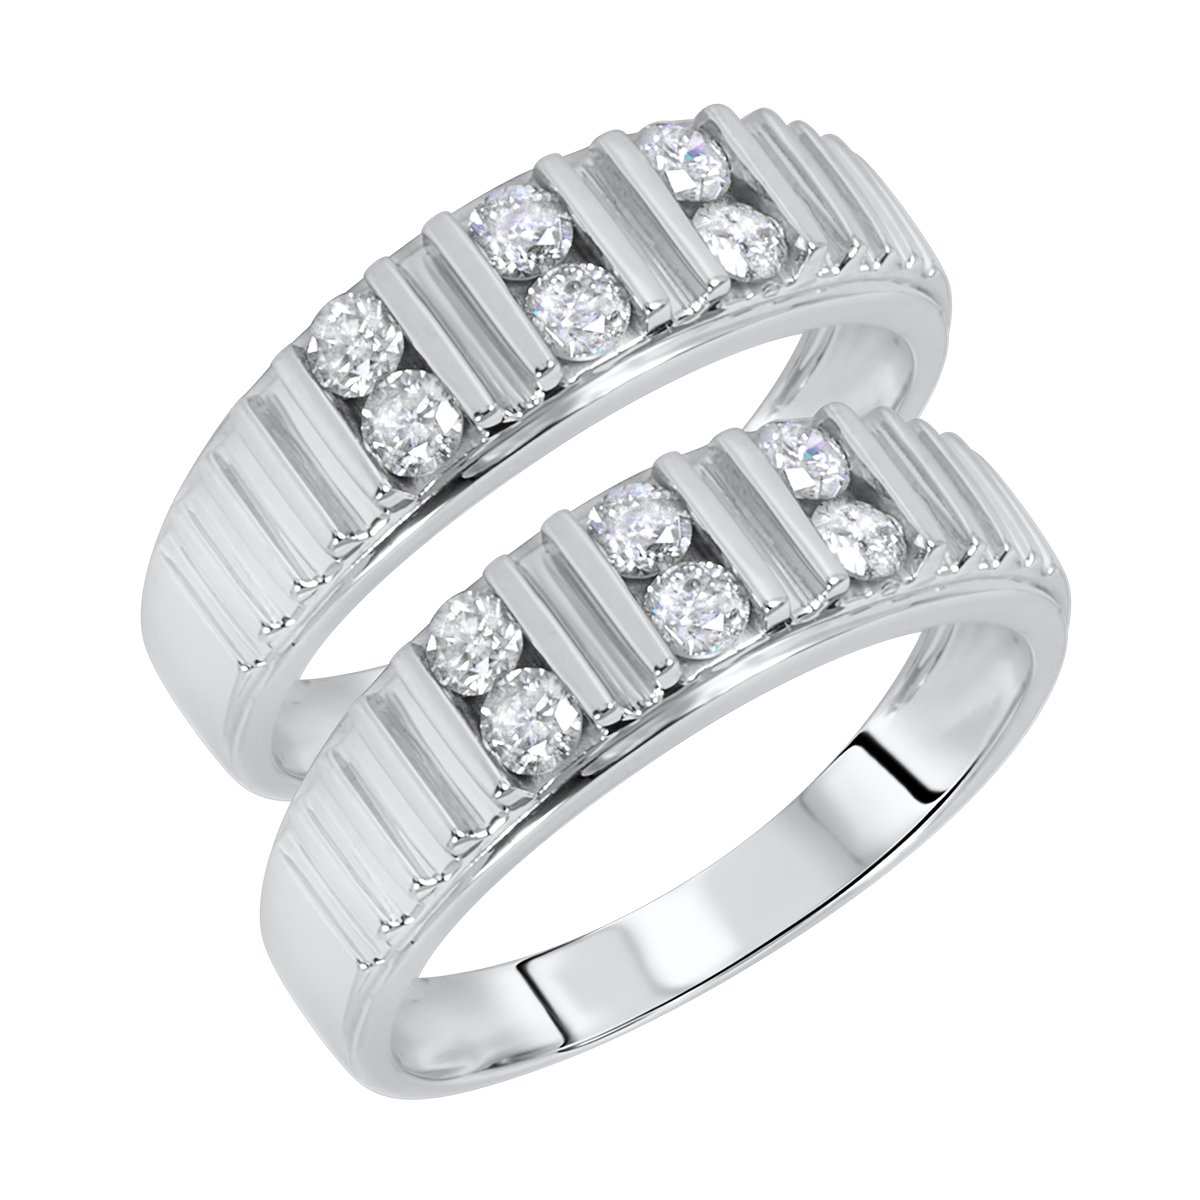 3/4 Carat T.W. Round Cut Ladies Same Sex Wedding Band Set 14K White Gold- Size 8